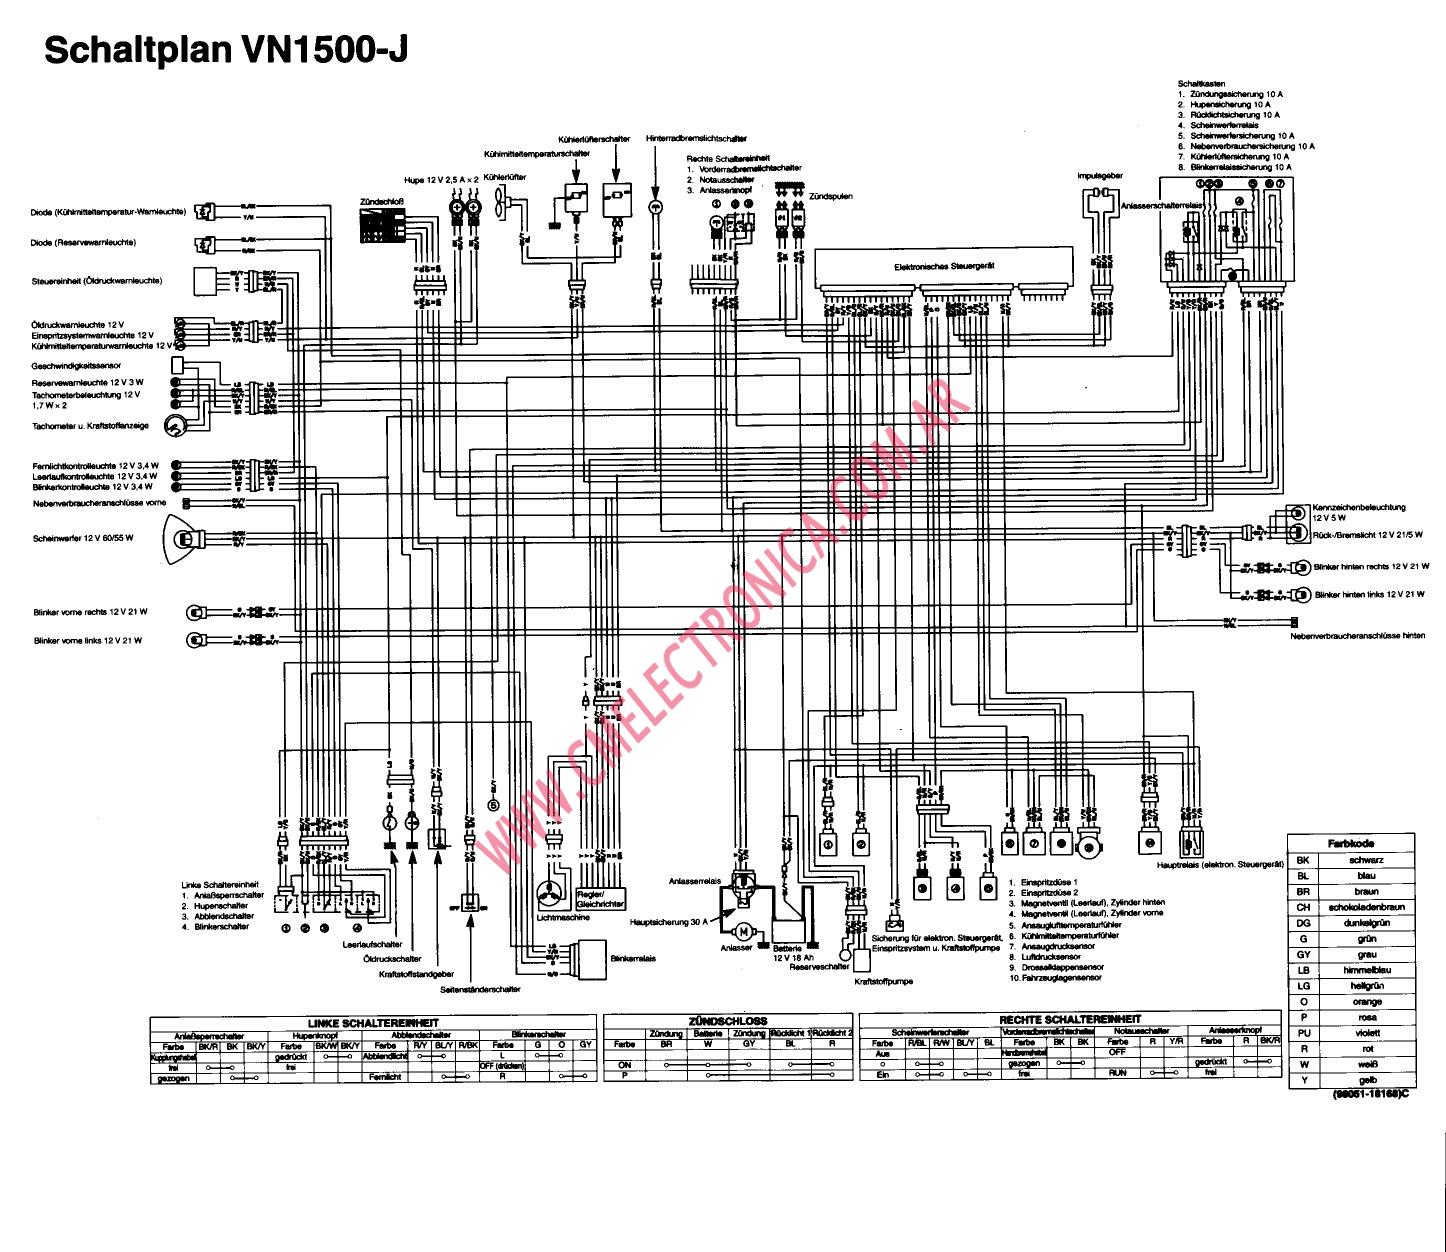 hight resolution of kfx 700 ignition diagram kfx free engine image for user kawasaki vulcan 1500 classic wiring diagram